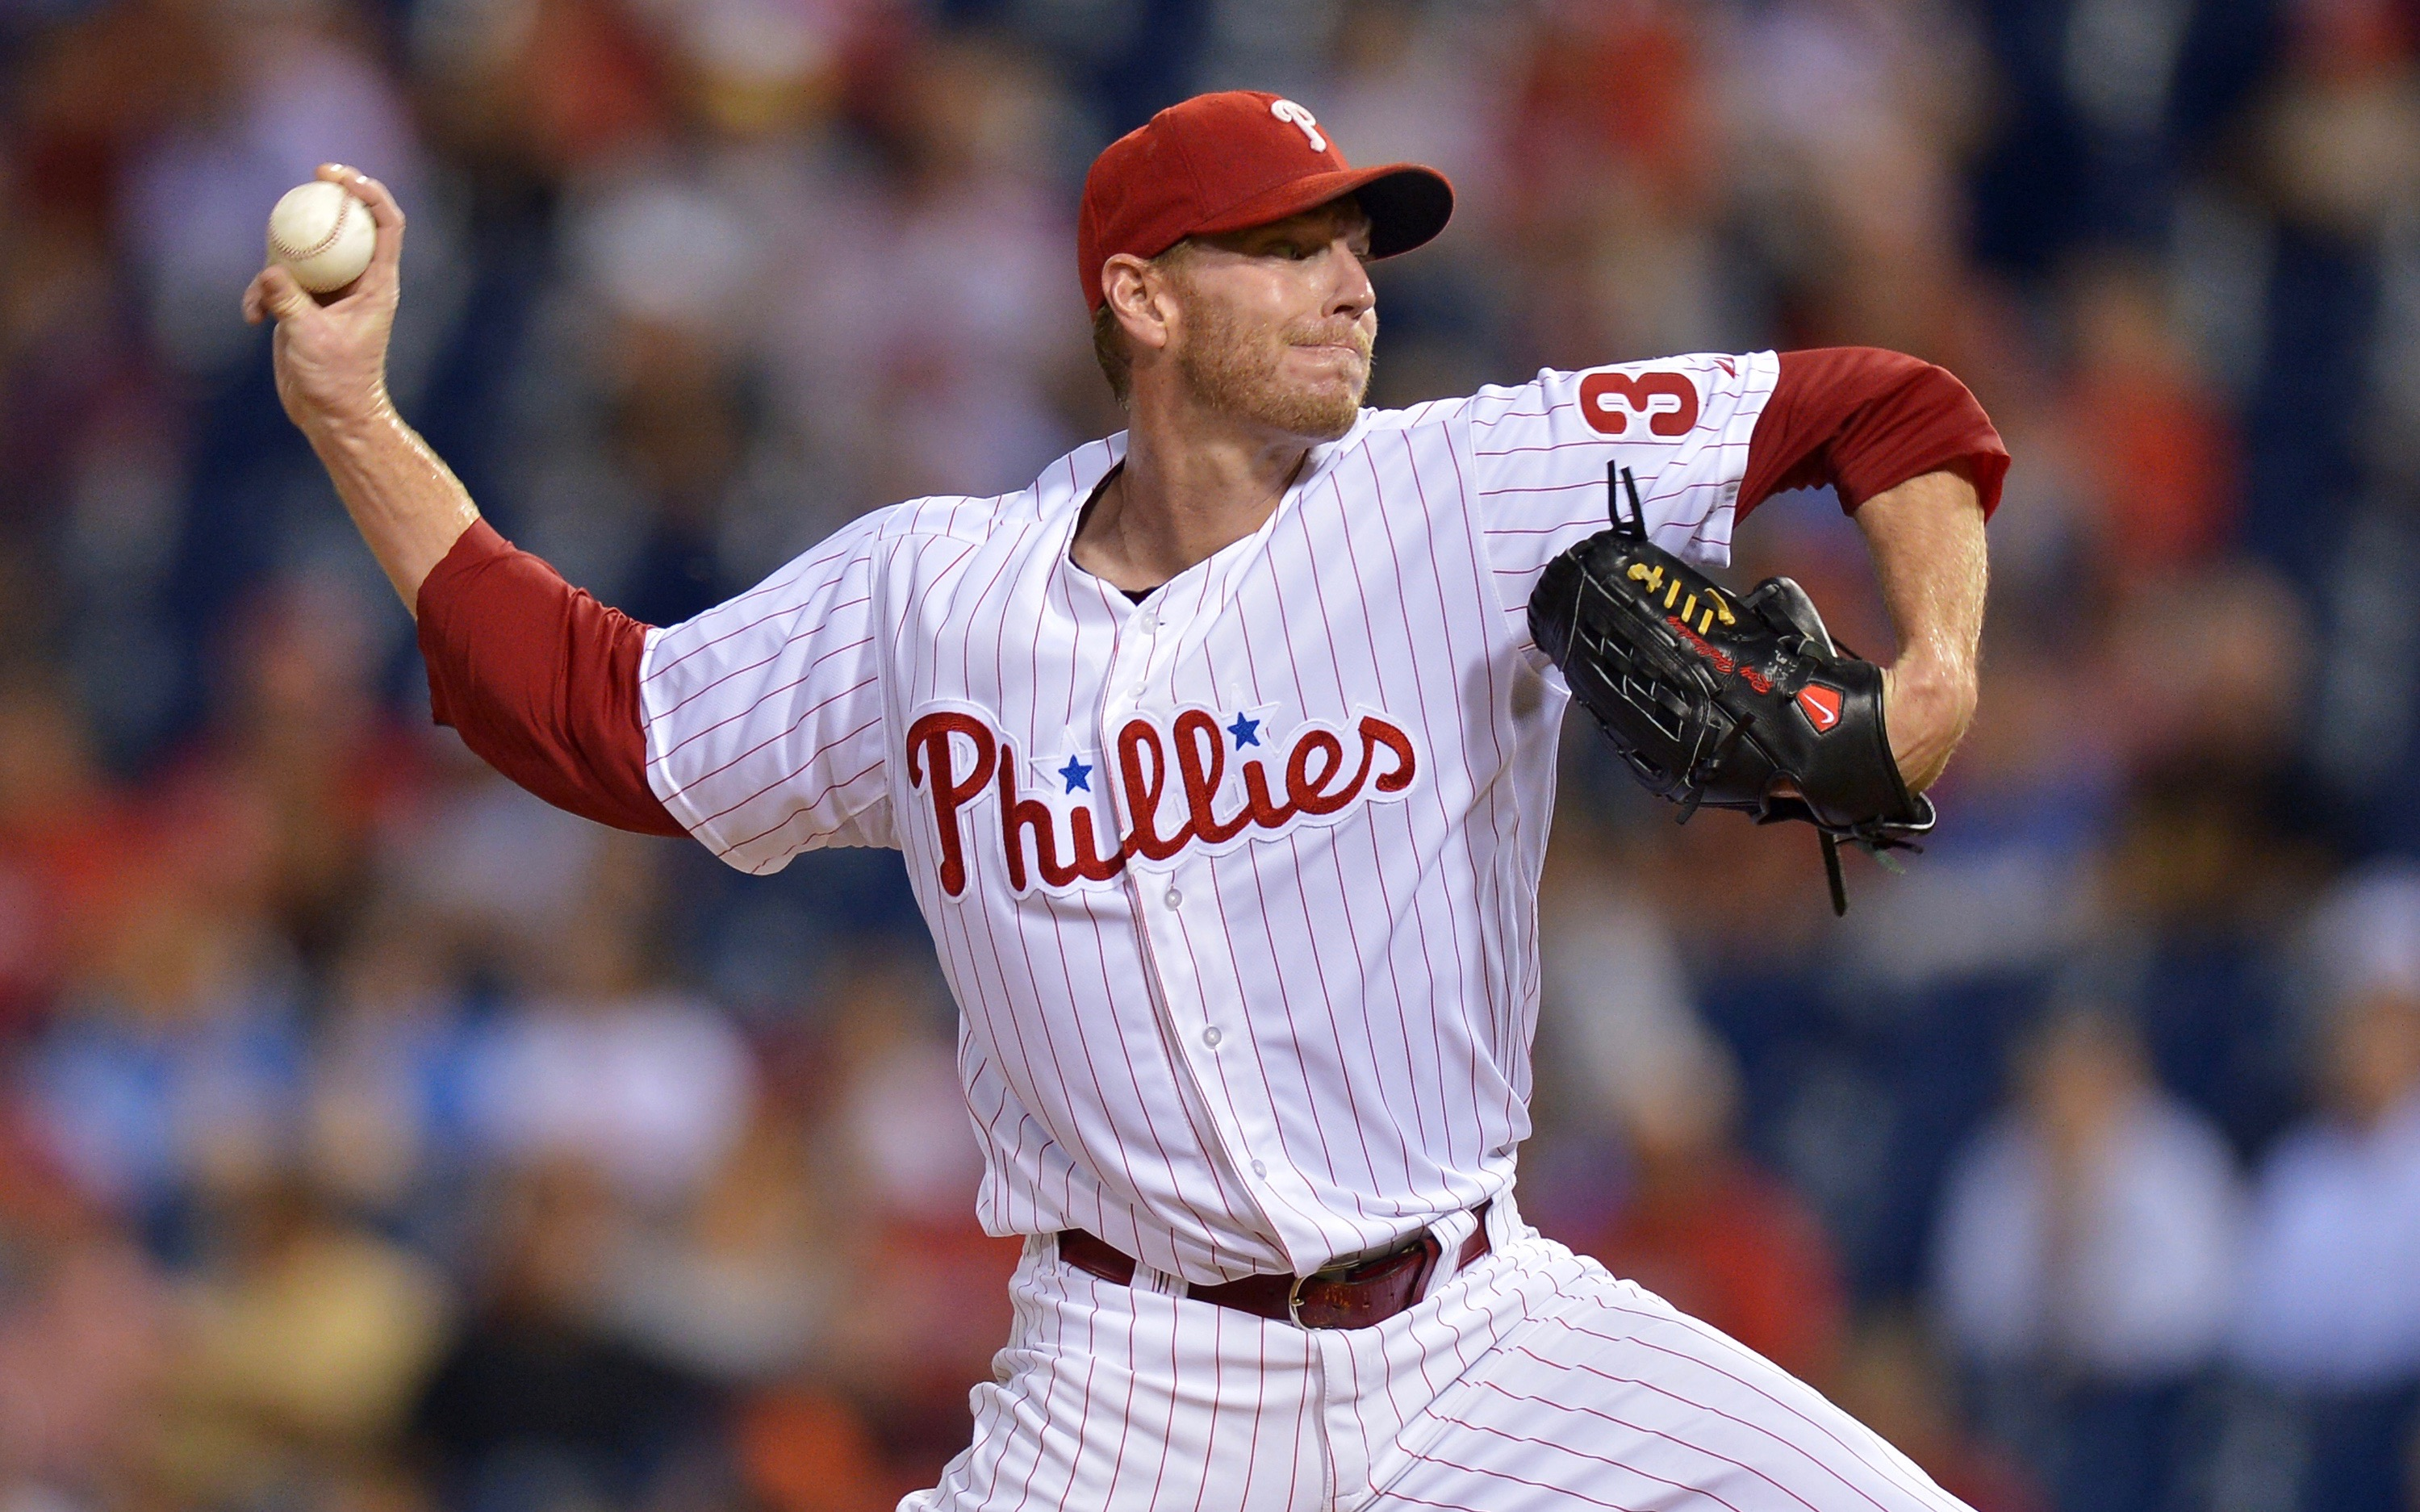 Roy Halladay was one of the best Major League Baseball had